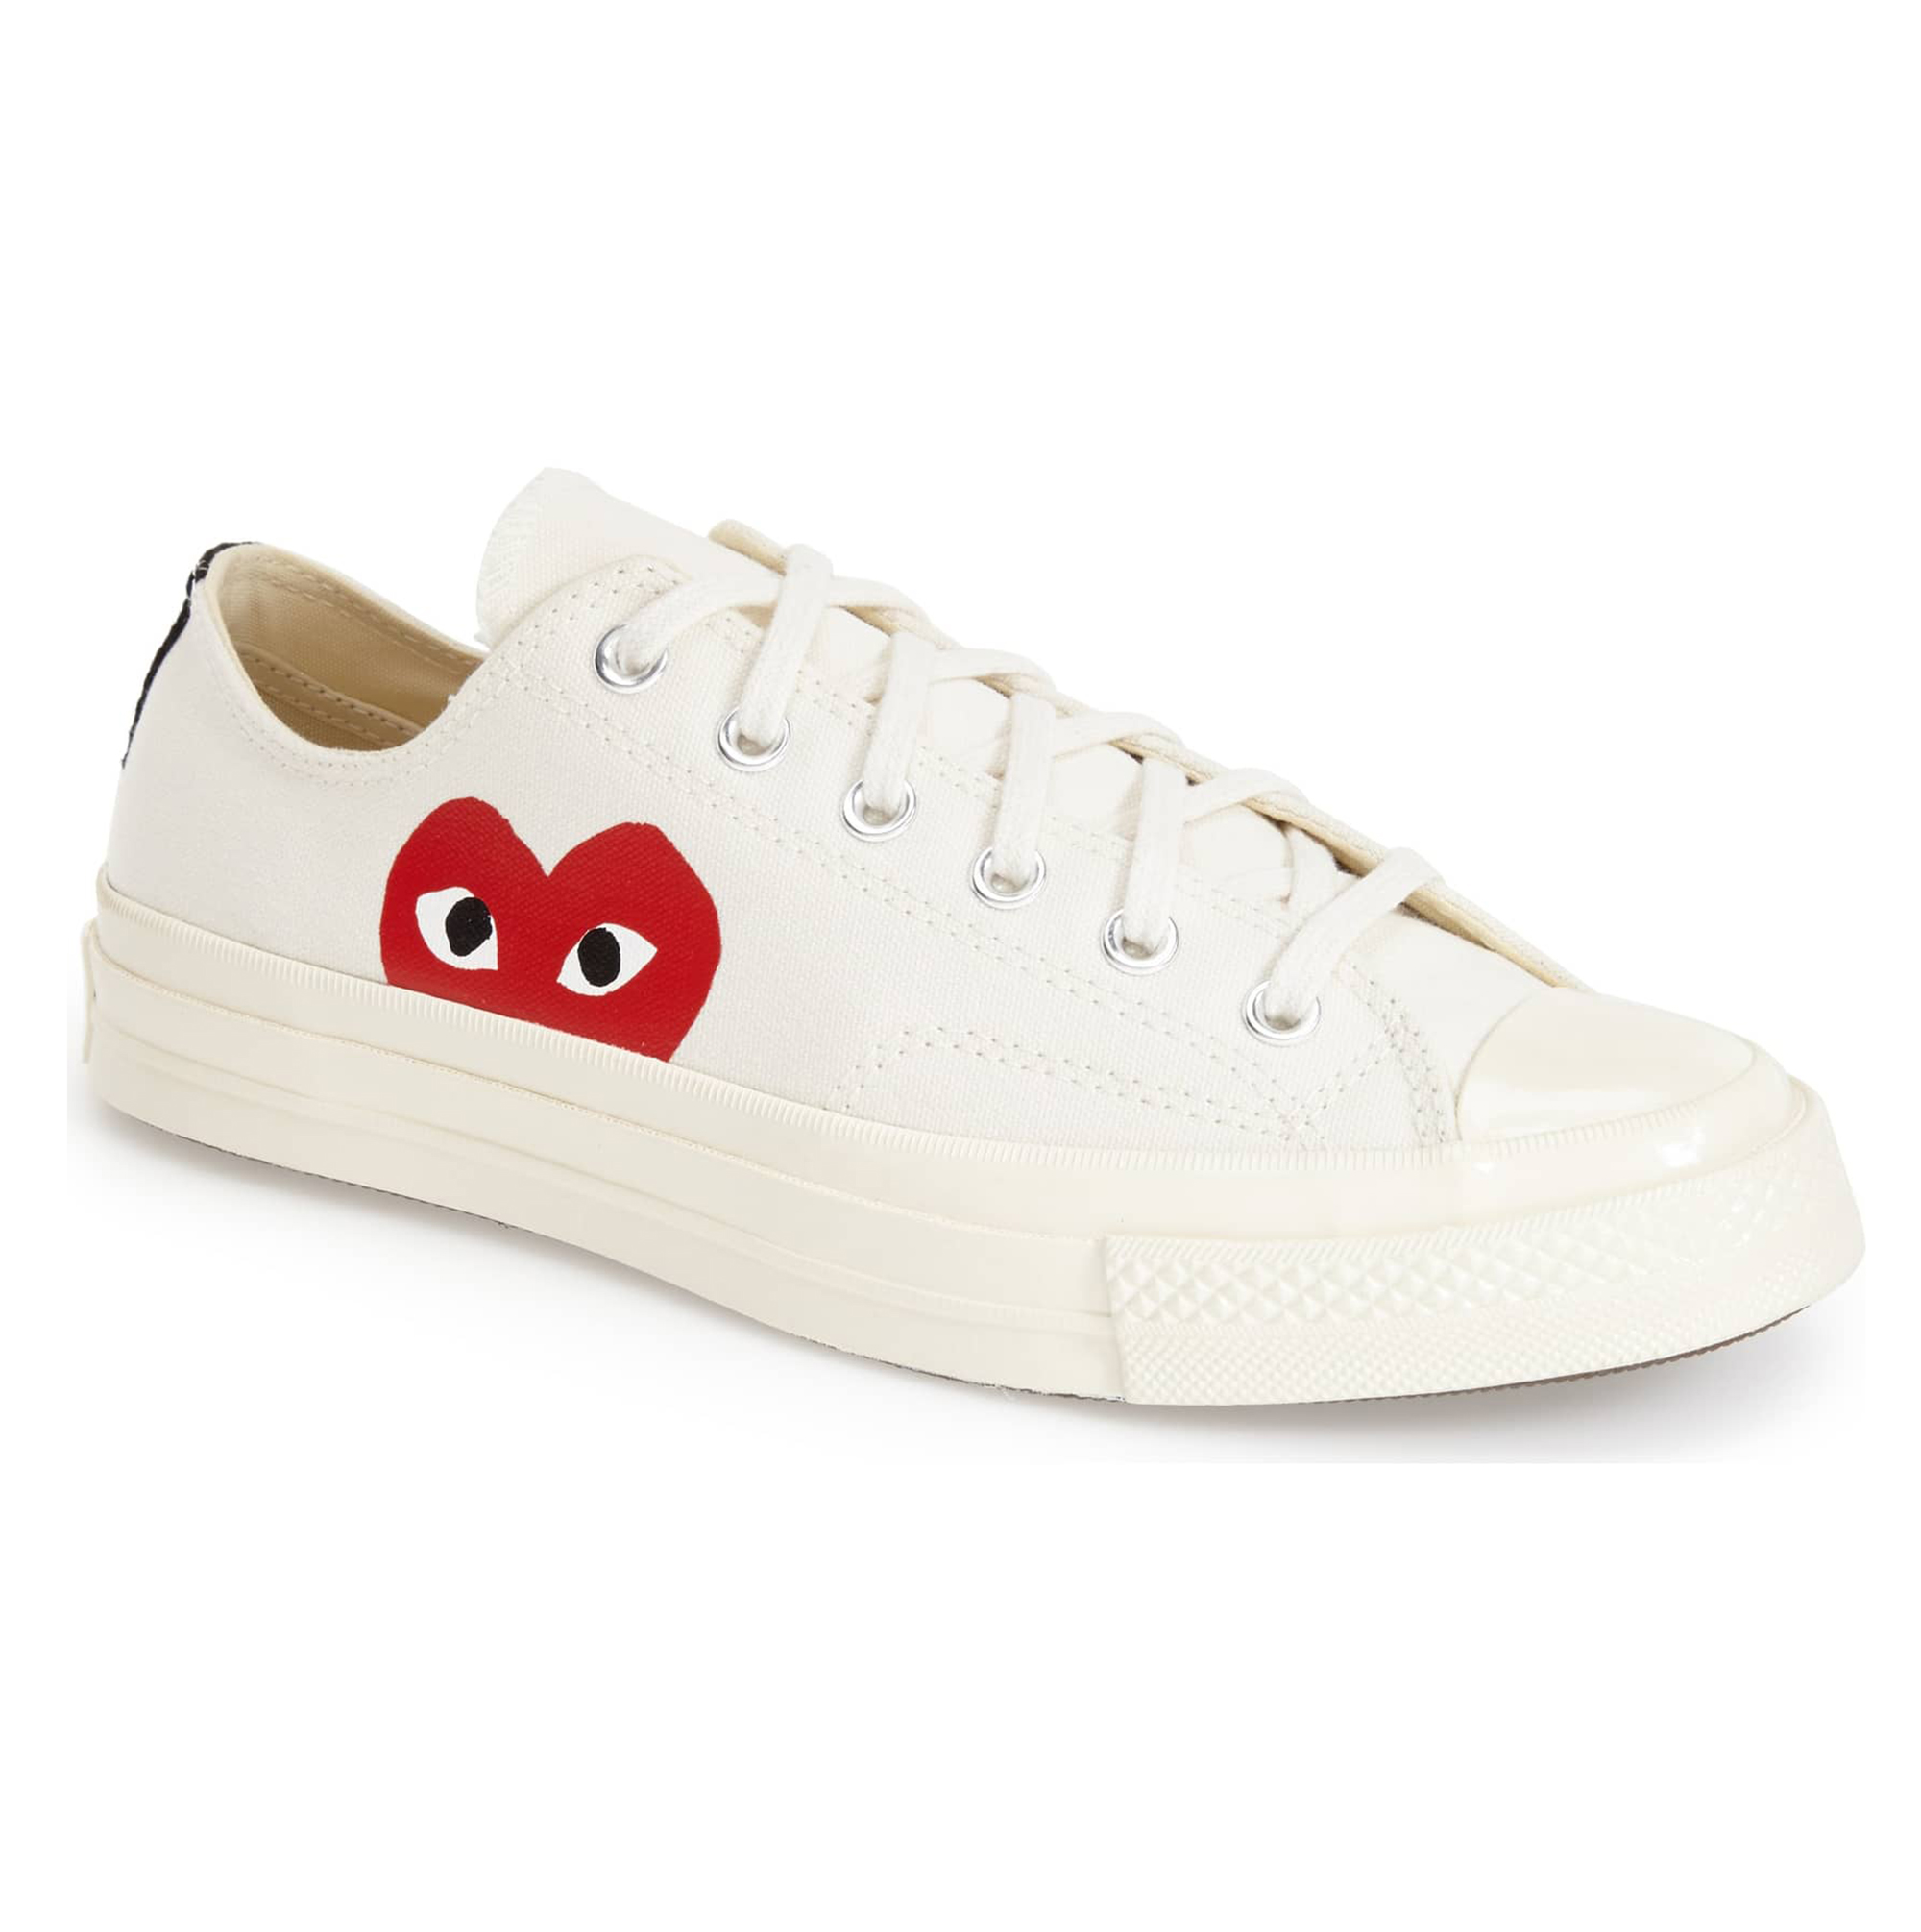 This Converse X Comme des Garcons Sneaker Is Too Cute